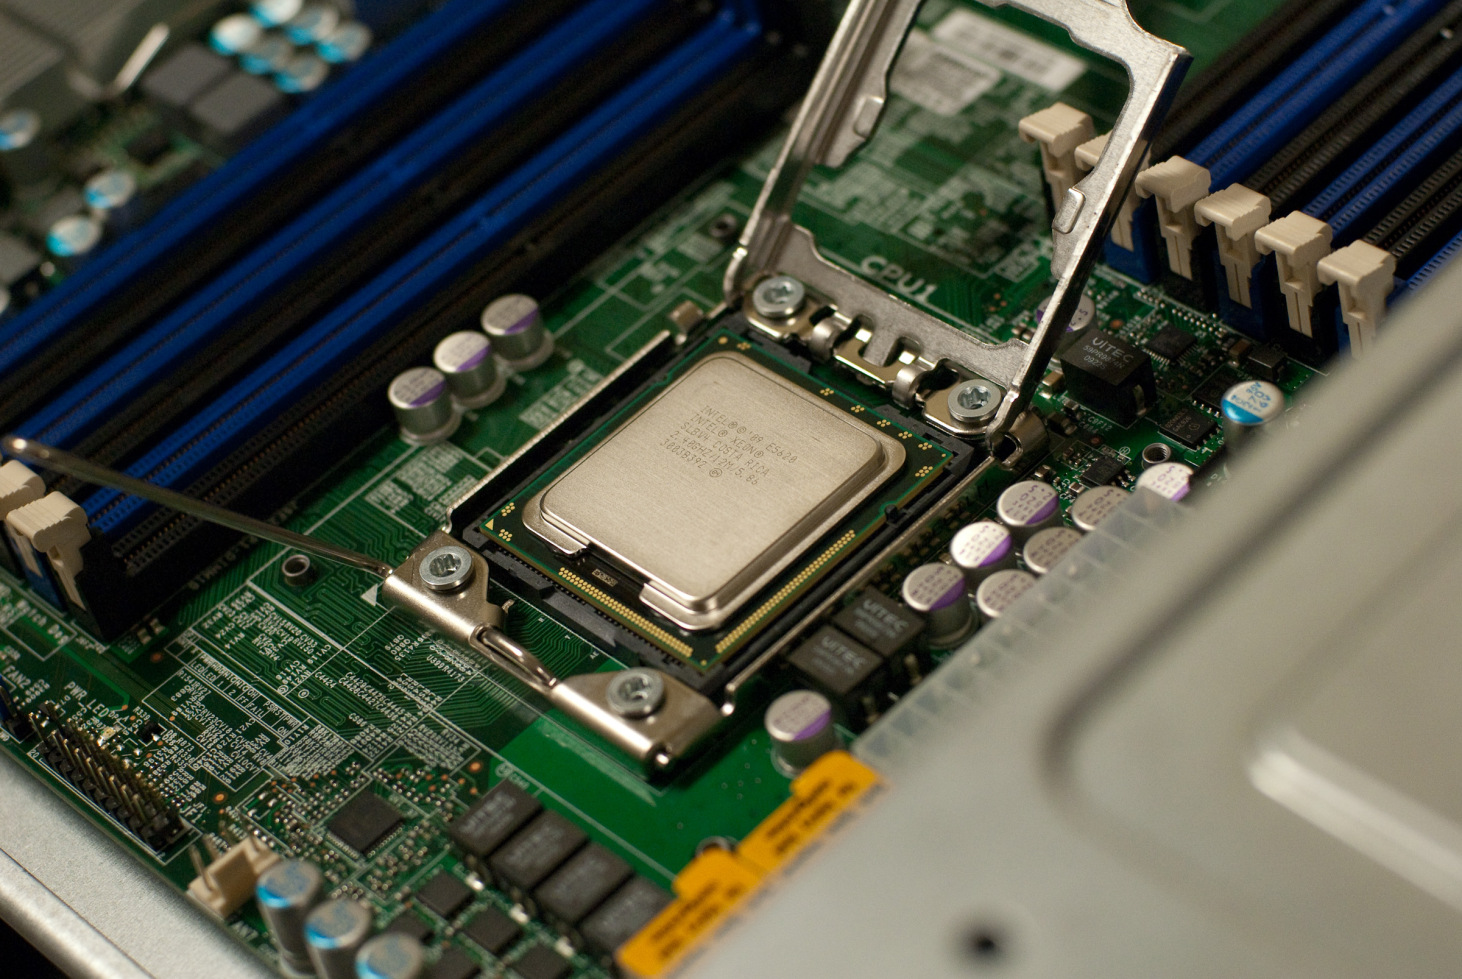 Intel Processors now utilizing iGPU for Malware Scanning. Securing down to the hardware level